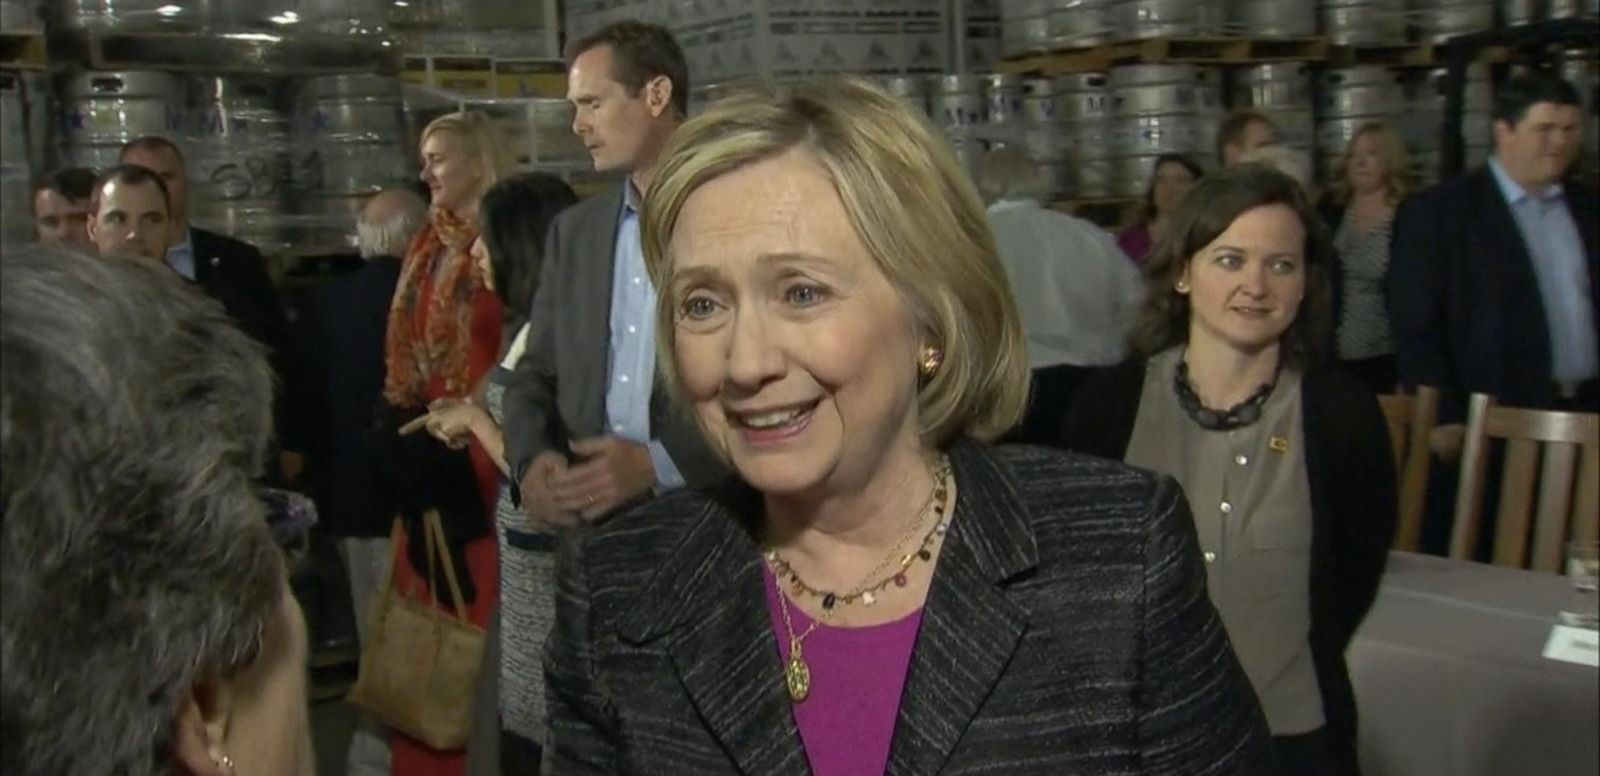 VIDEO: State Department Releases Batch of Hillary Clinton's Emails